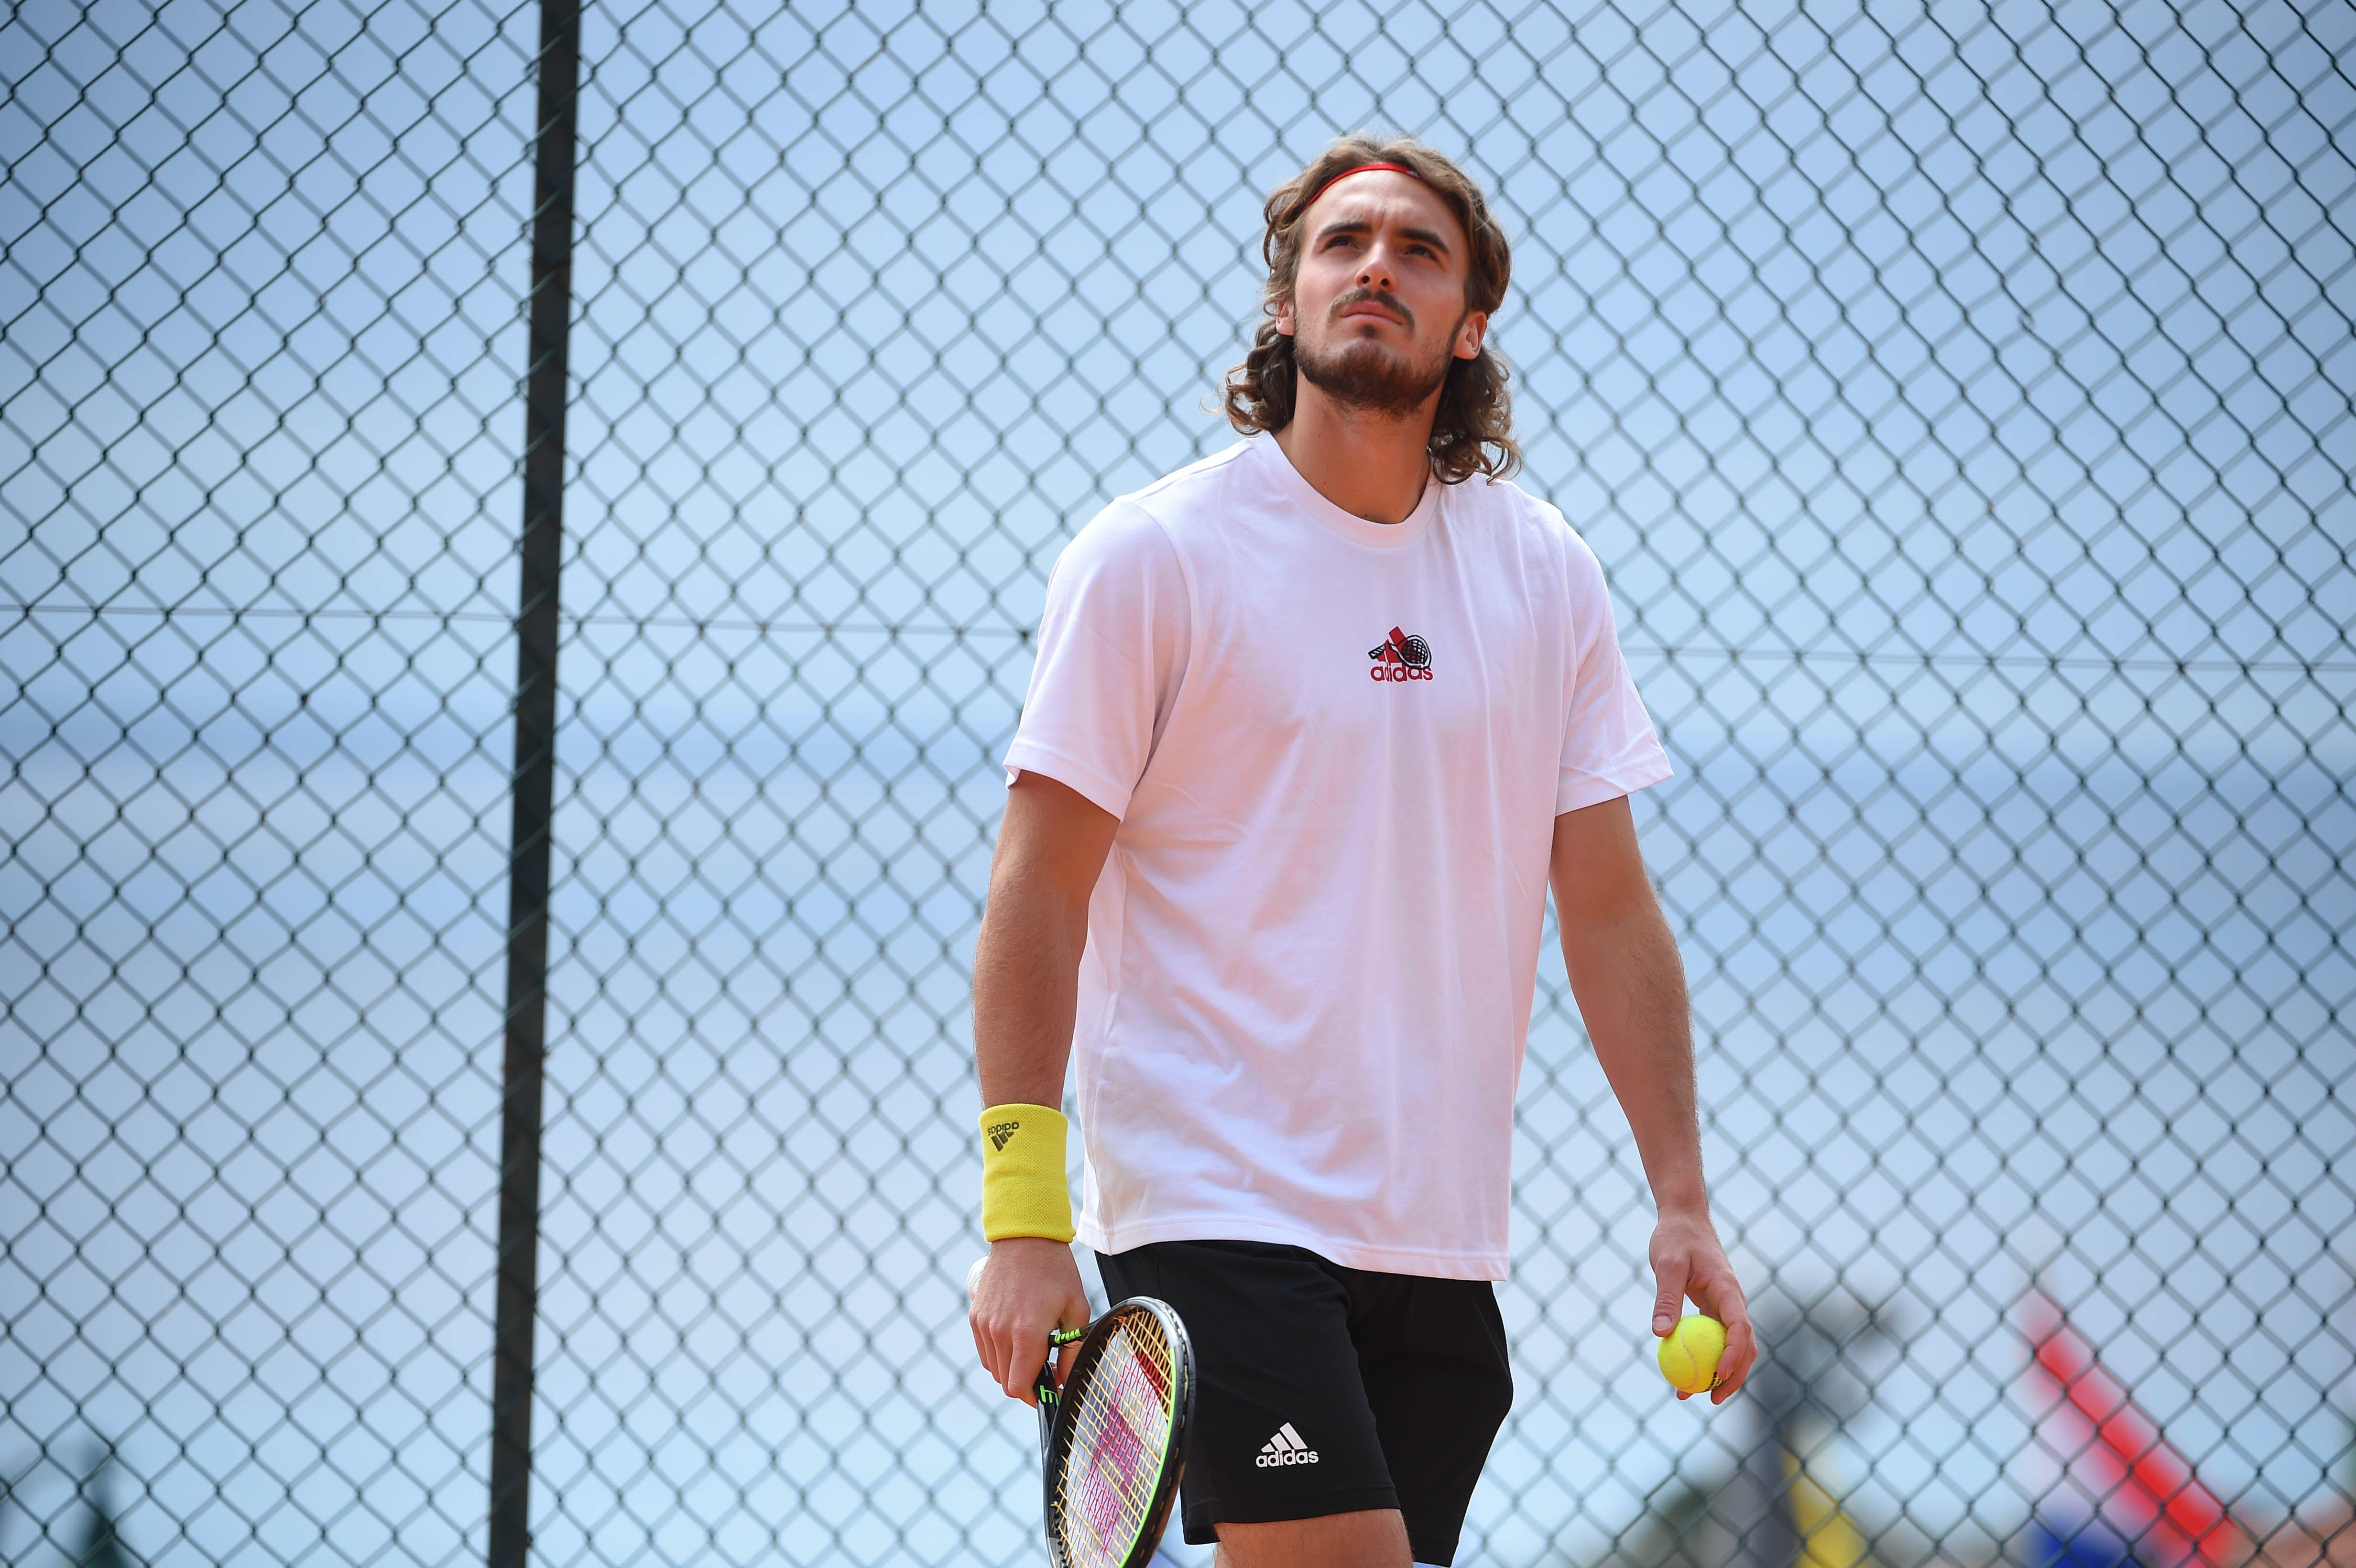 Stefanos Tsitsipas at practice during Rolex Monte-Carlo Masters 2021